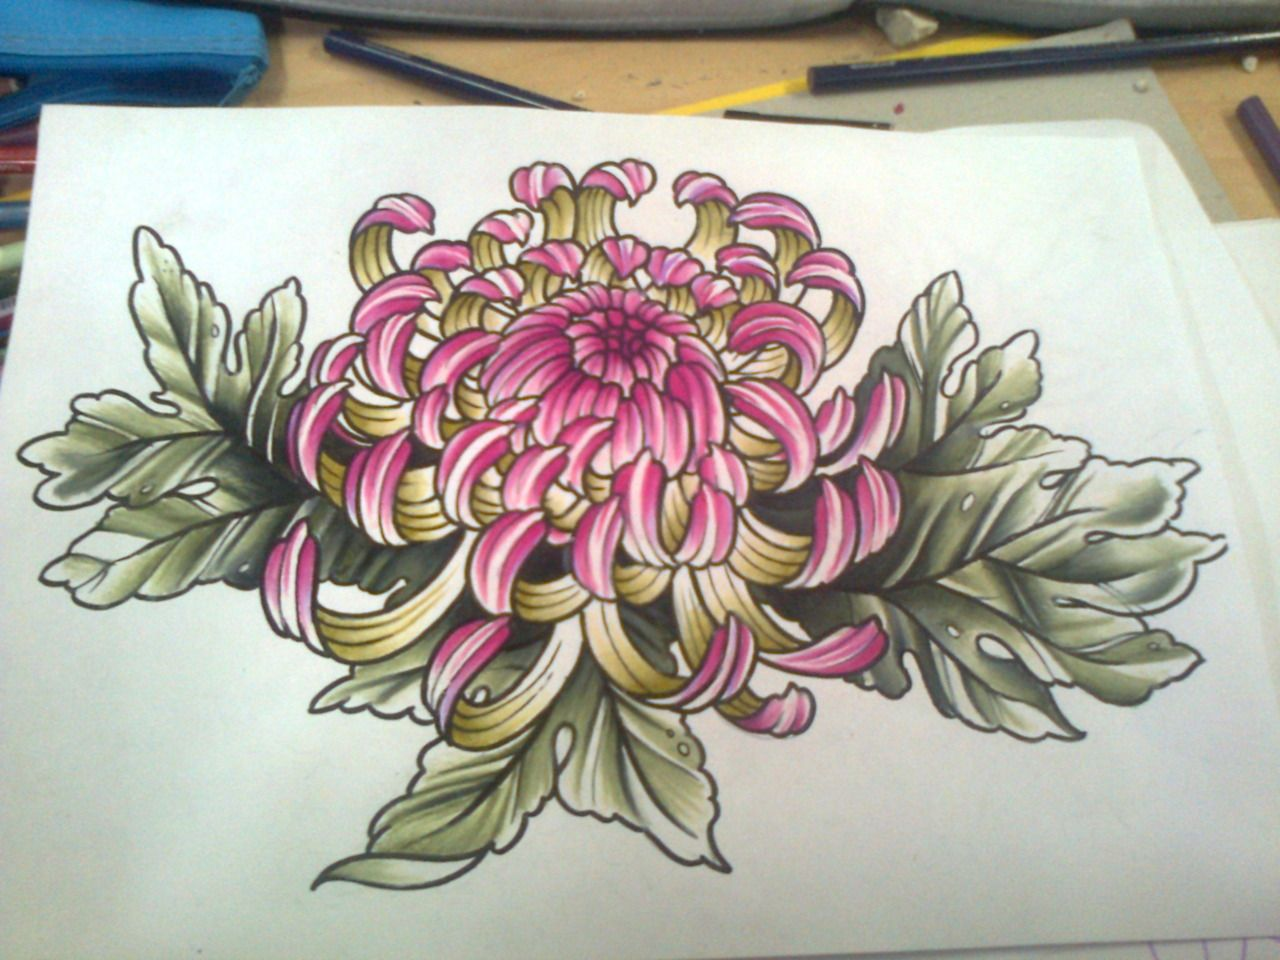 japan chrysanthemum design Google Search Floral